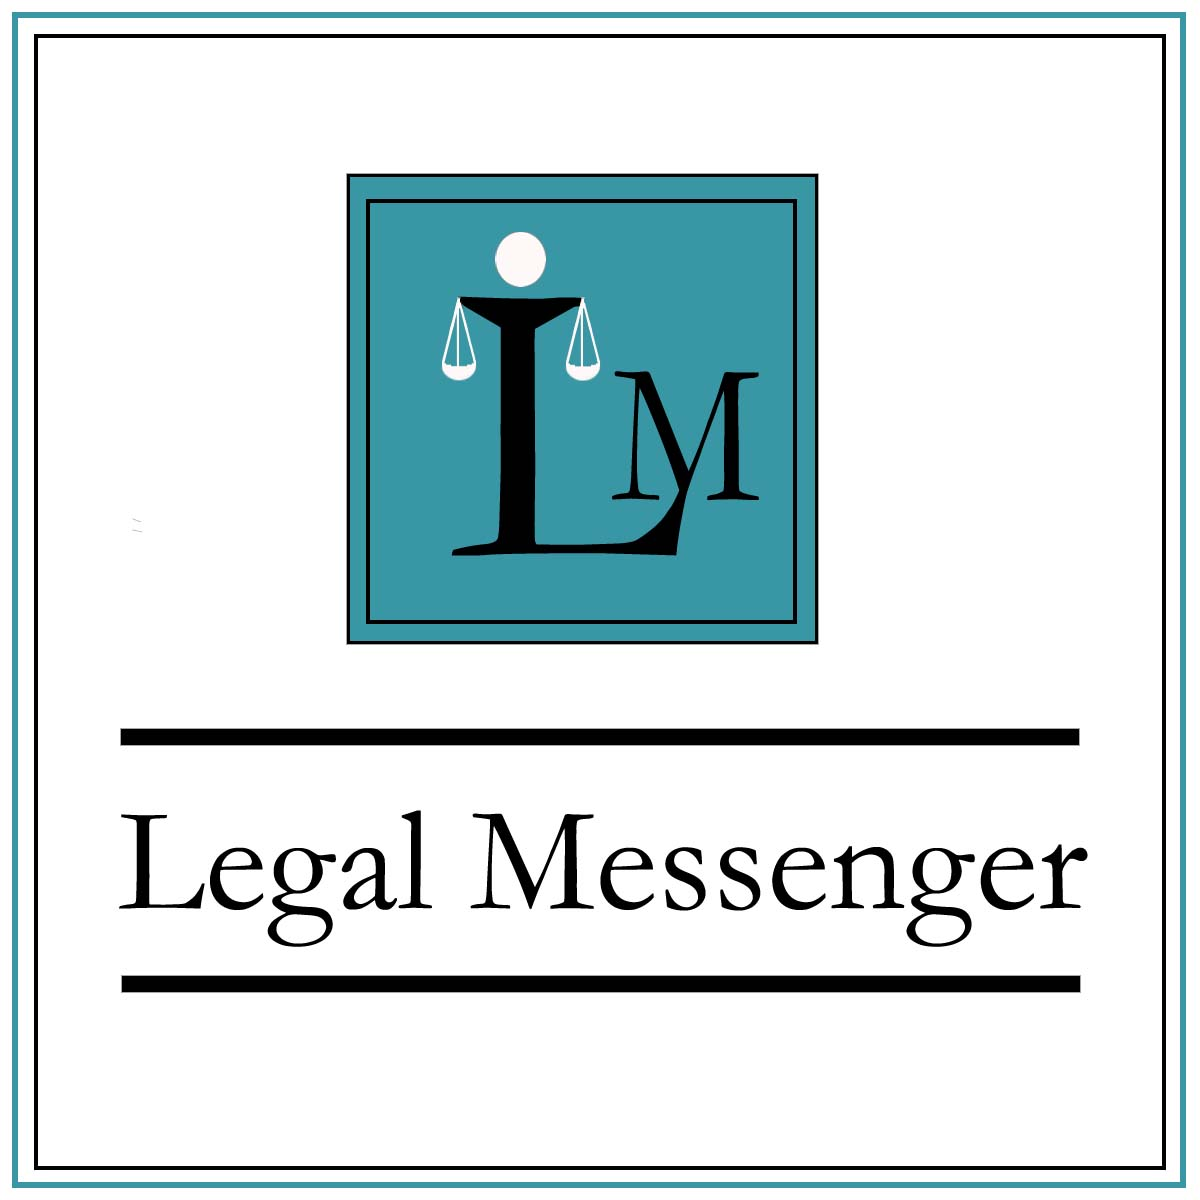 Call for Papers: Legal Messenger: Submit by May 25; Pay INR 1600 / 2100 for Publication